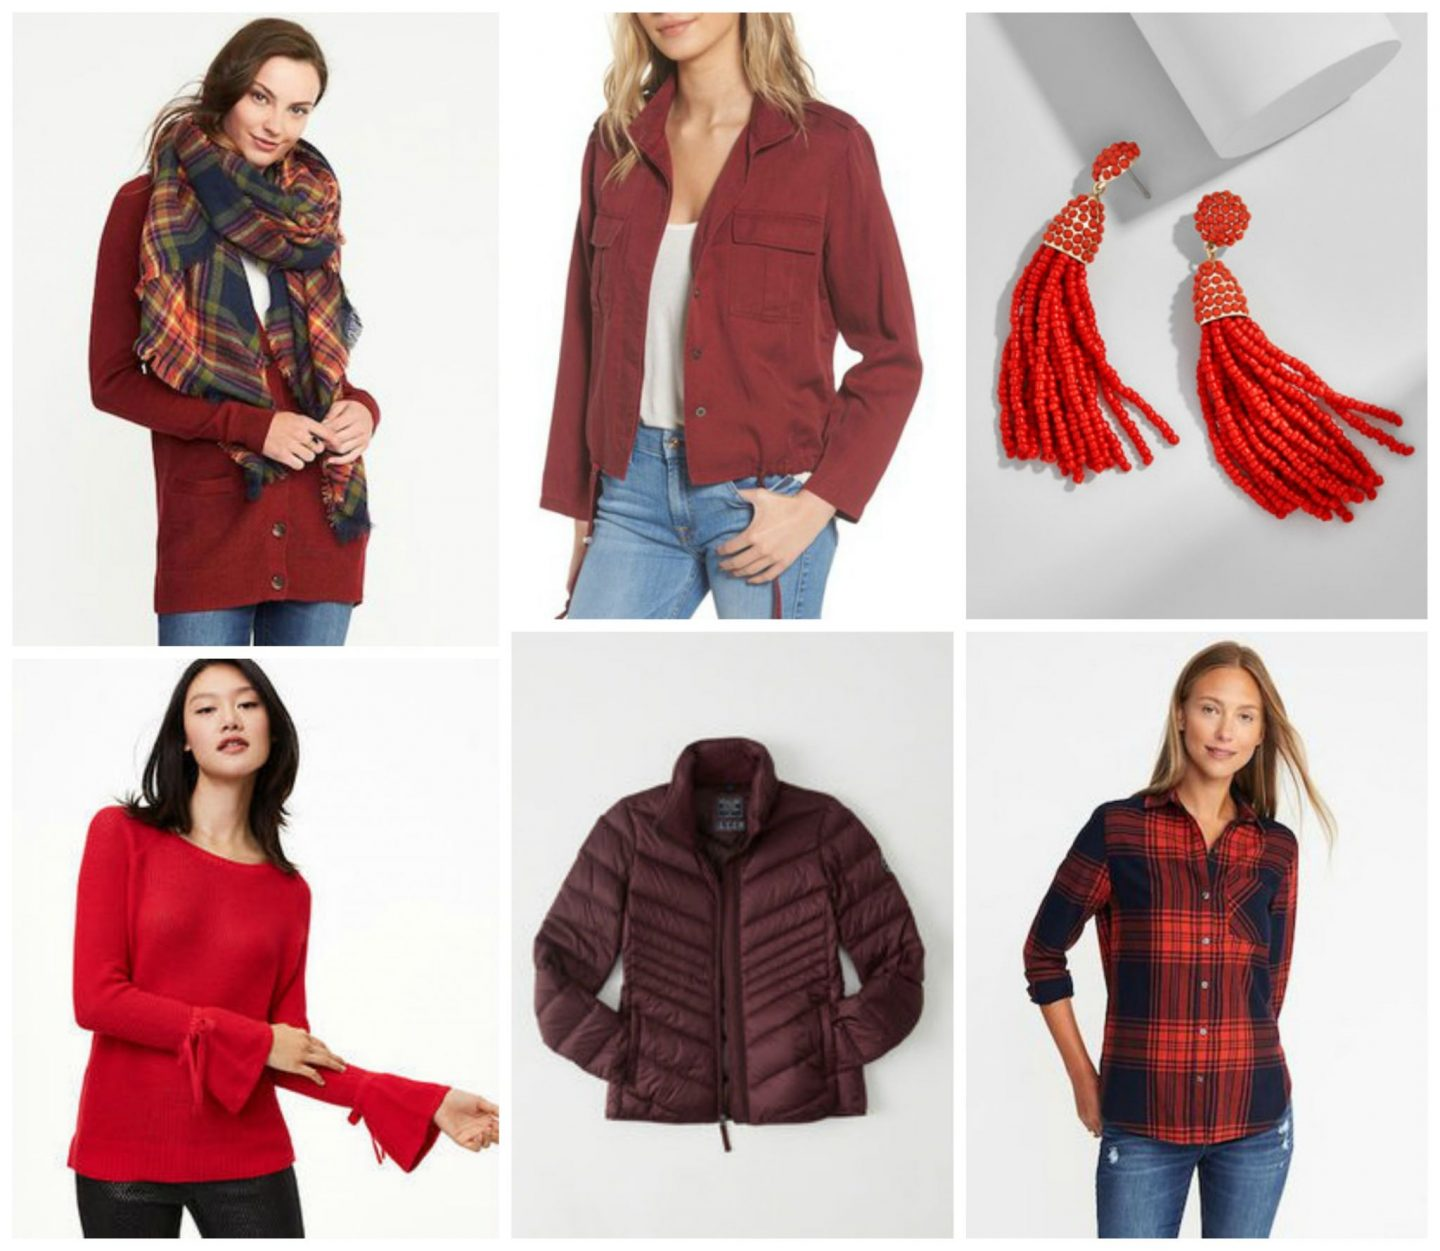 Tuesday's Cravings: Red